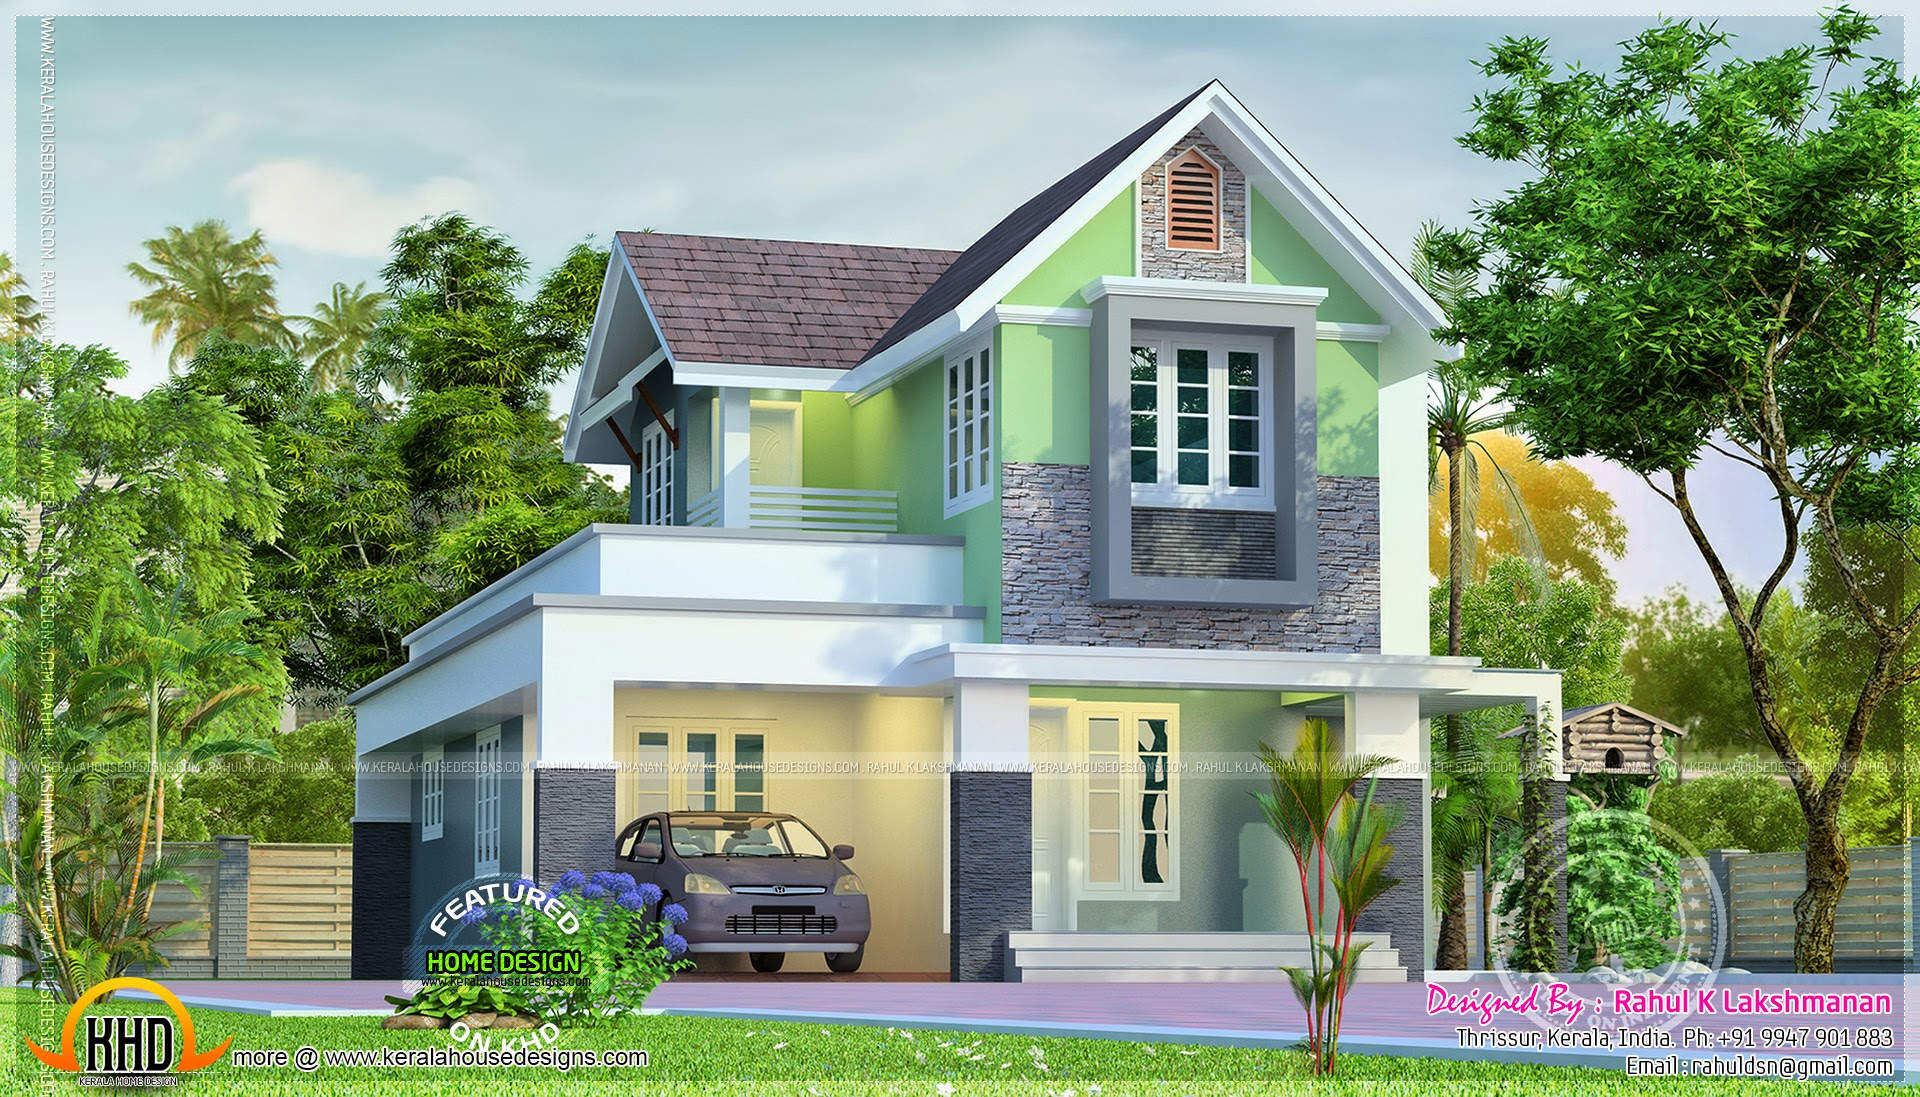 cute little house plan kerala home design and floor plans On cute small house design